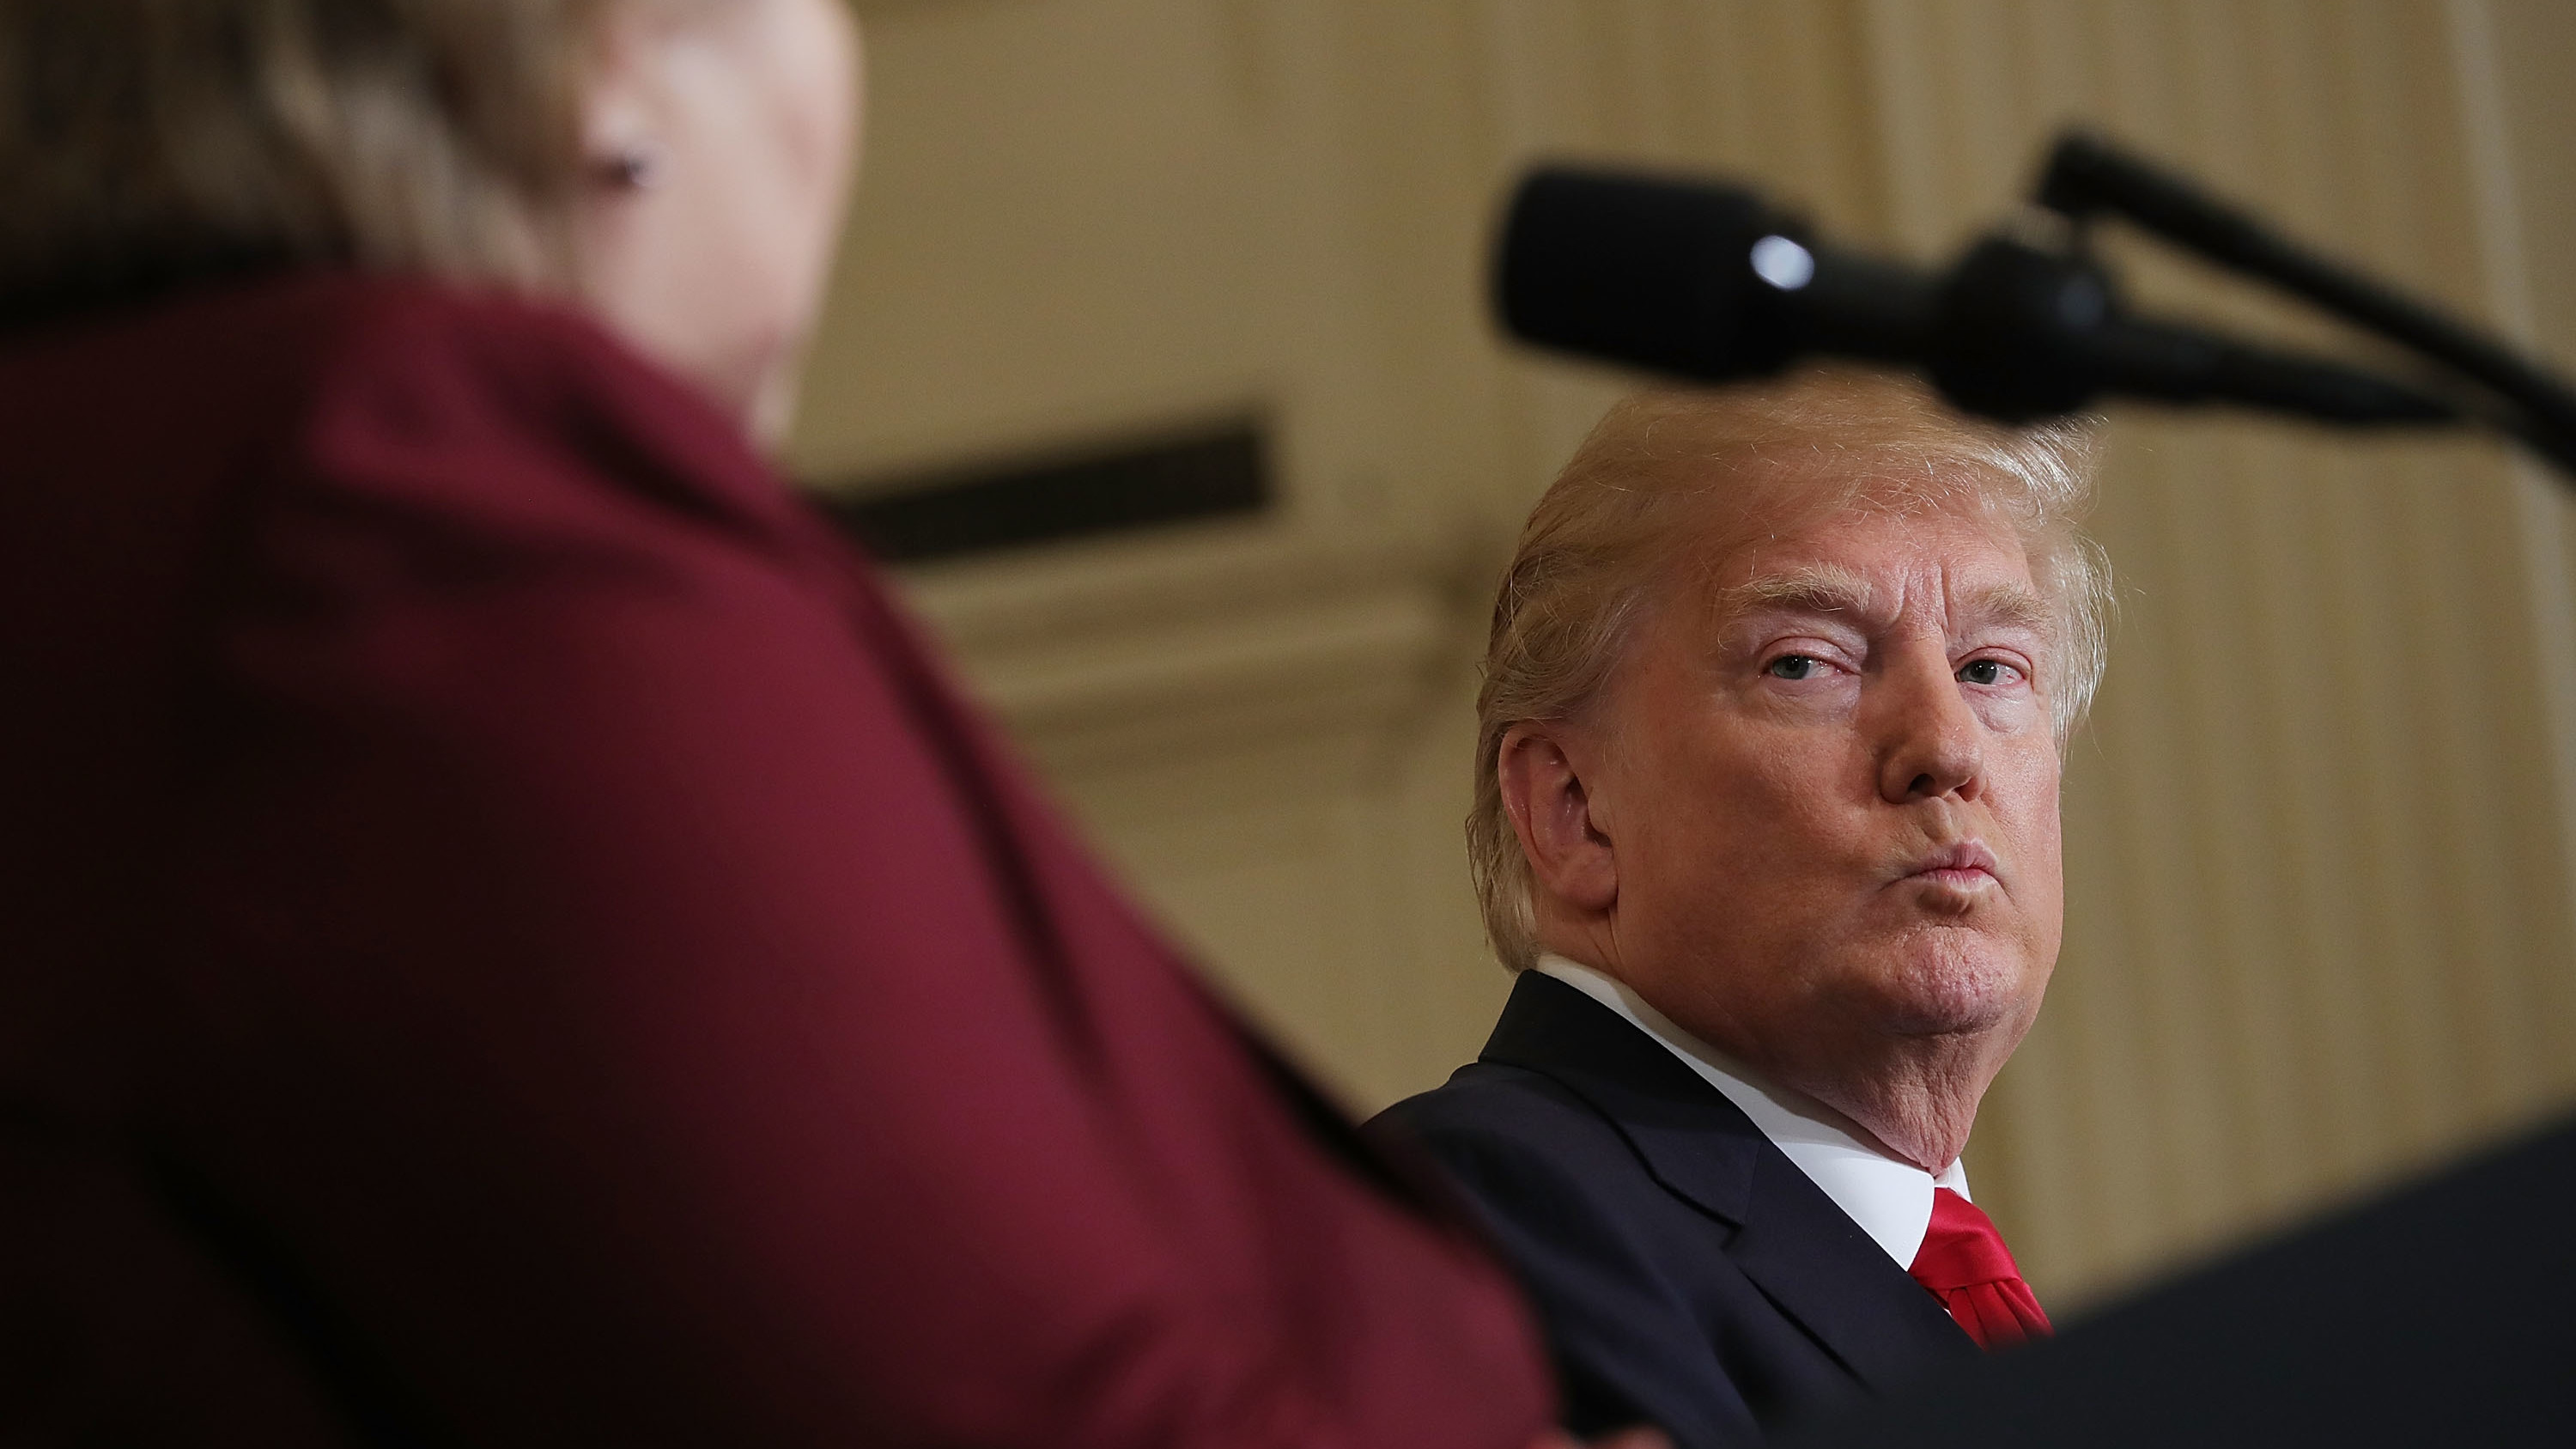 """President Trump listens as Norwegian Prime Minister Erna Solberg speaks at a joint news conference Wednesday. At an Oval Office meeting on immigration policy, Trump said the U.S. should want more people from countries like Norway, disparaging Haiti and what he called """"shithole countries"""" in Africa."""